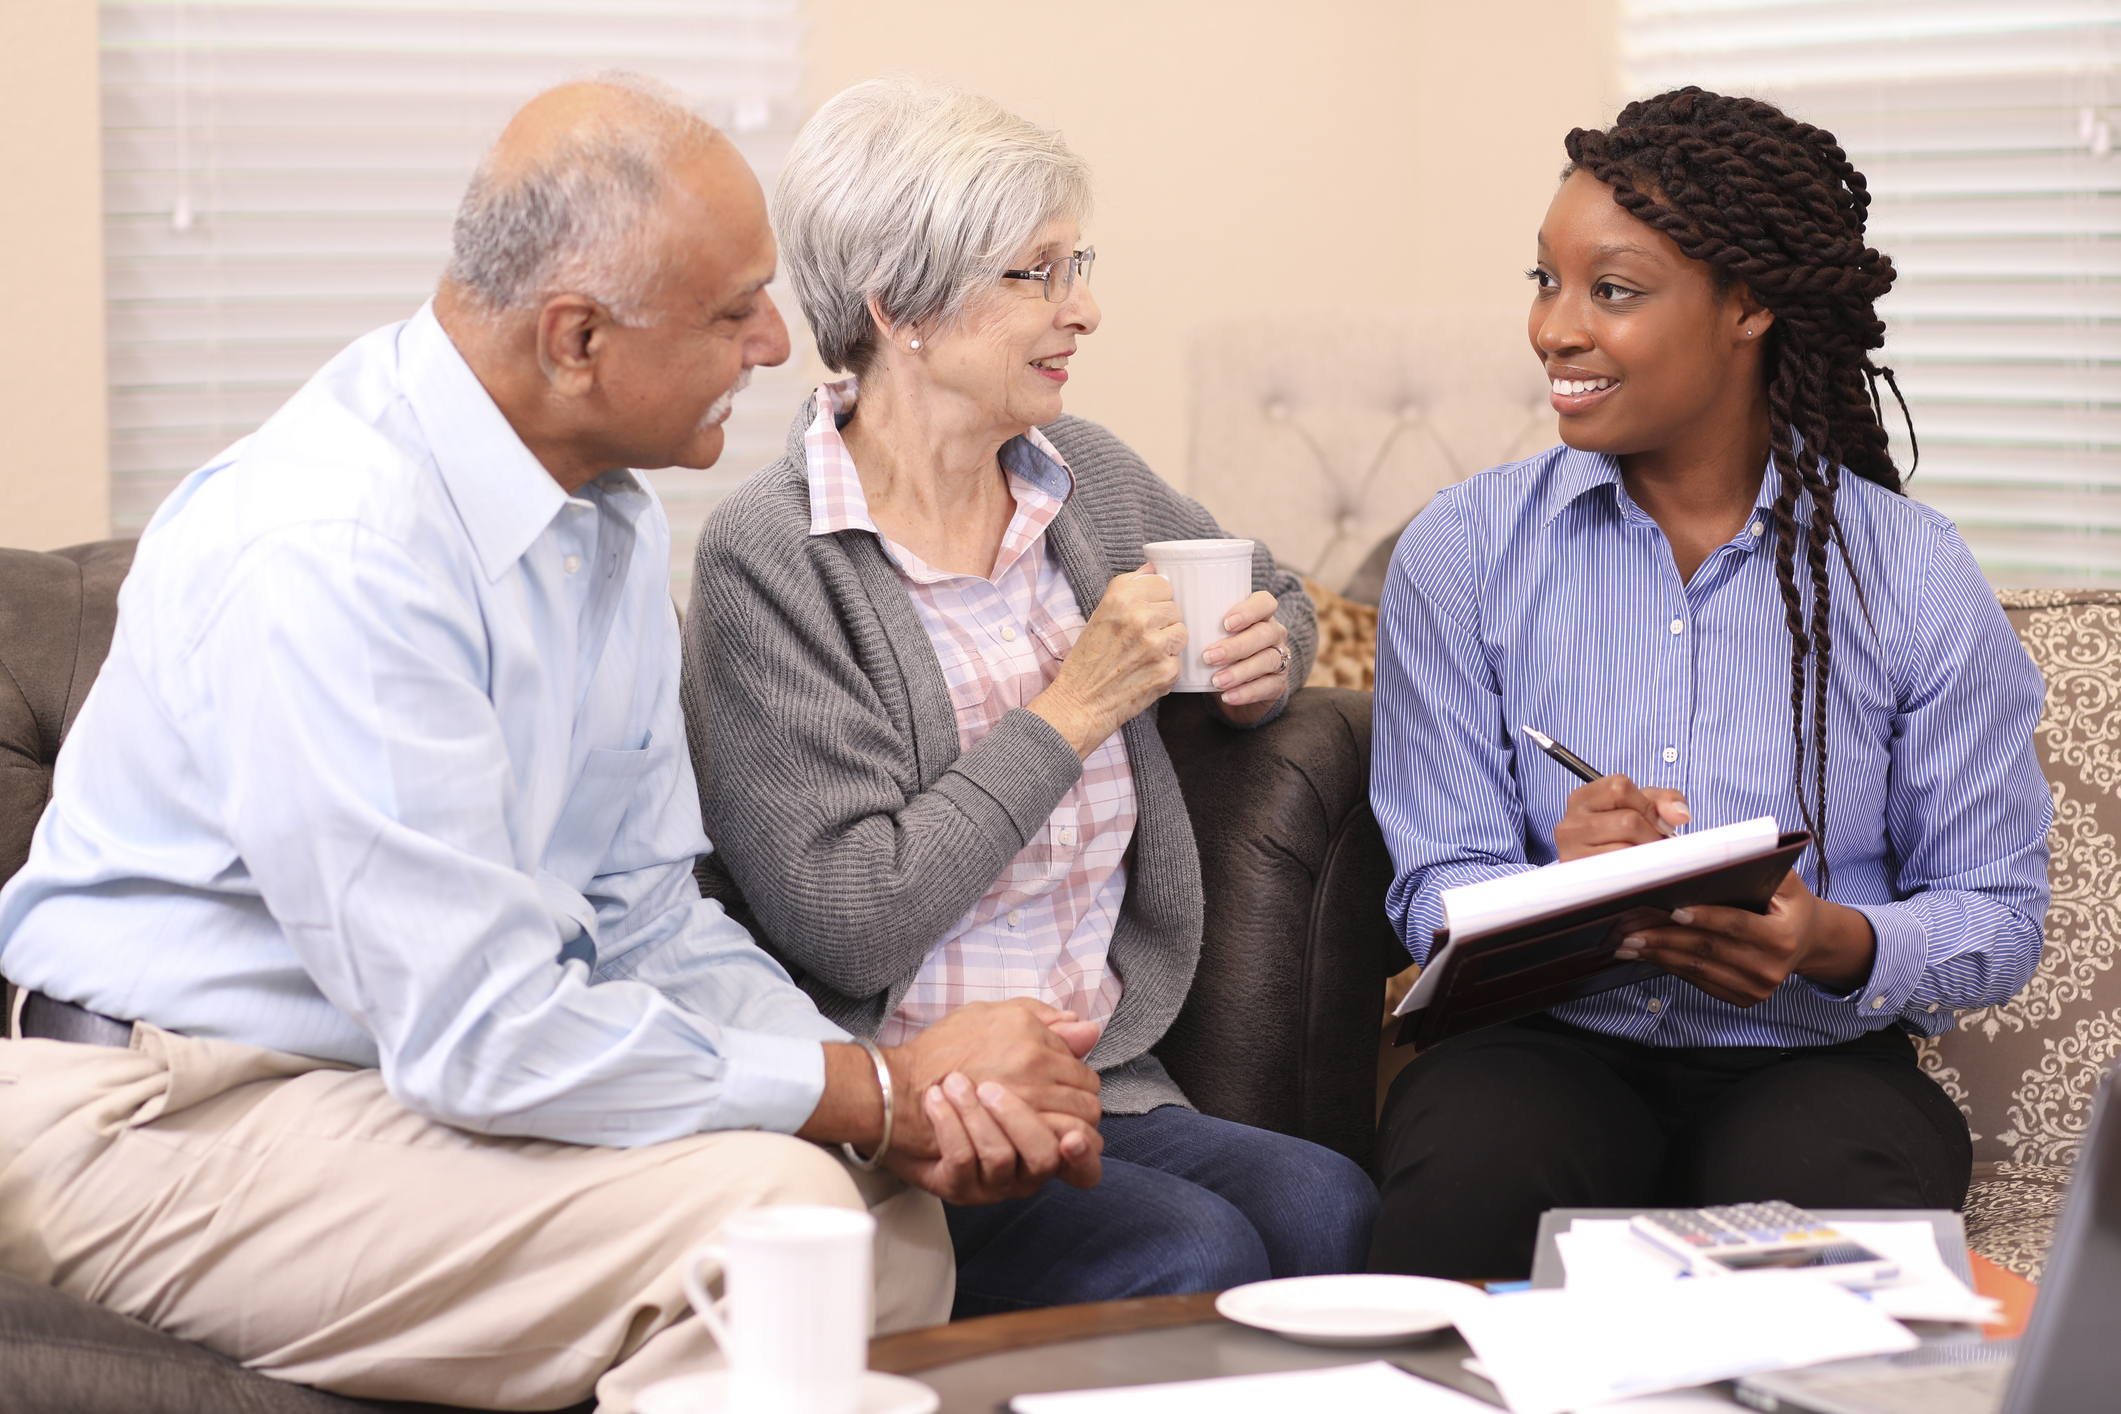 stock photo of elderly couple meeting with a professional